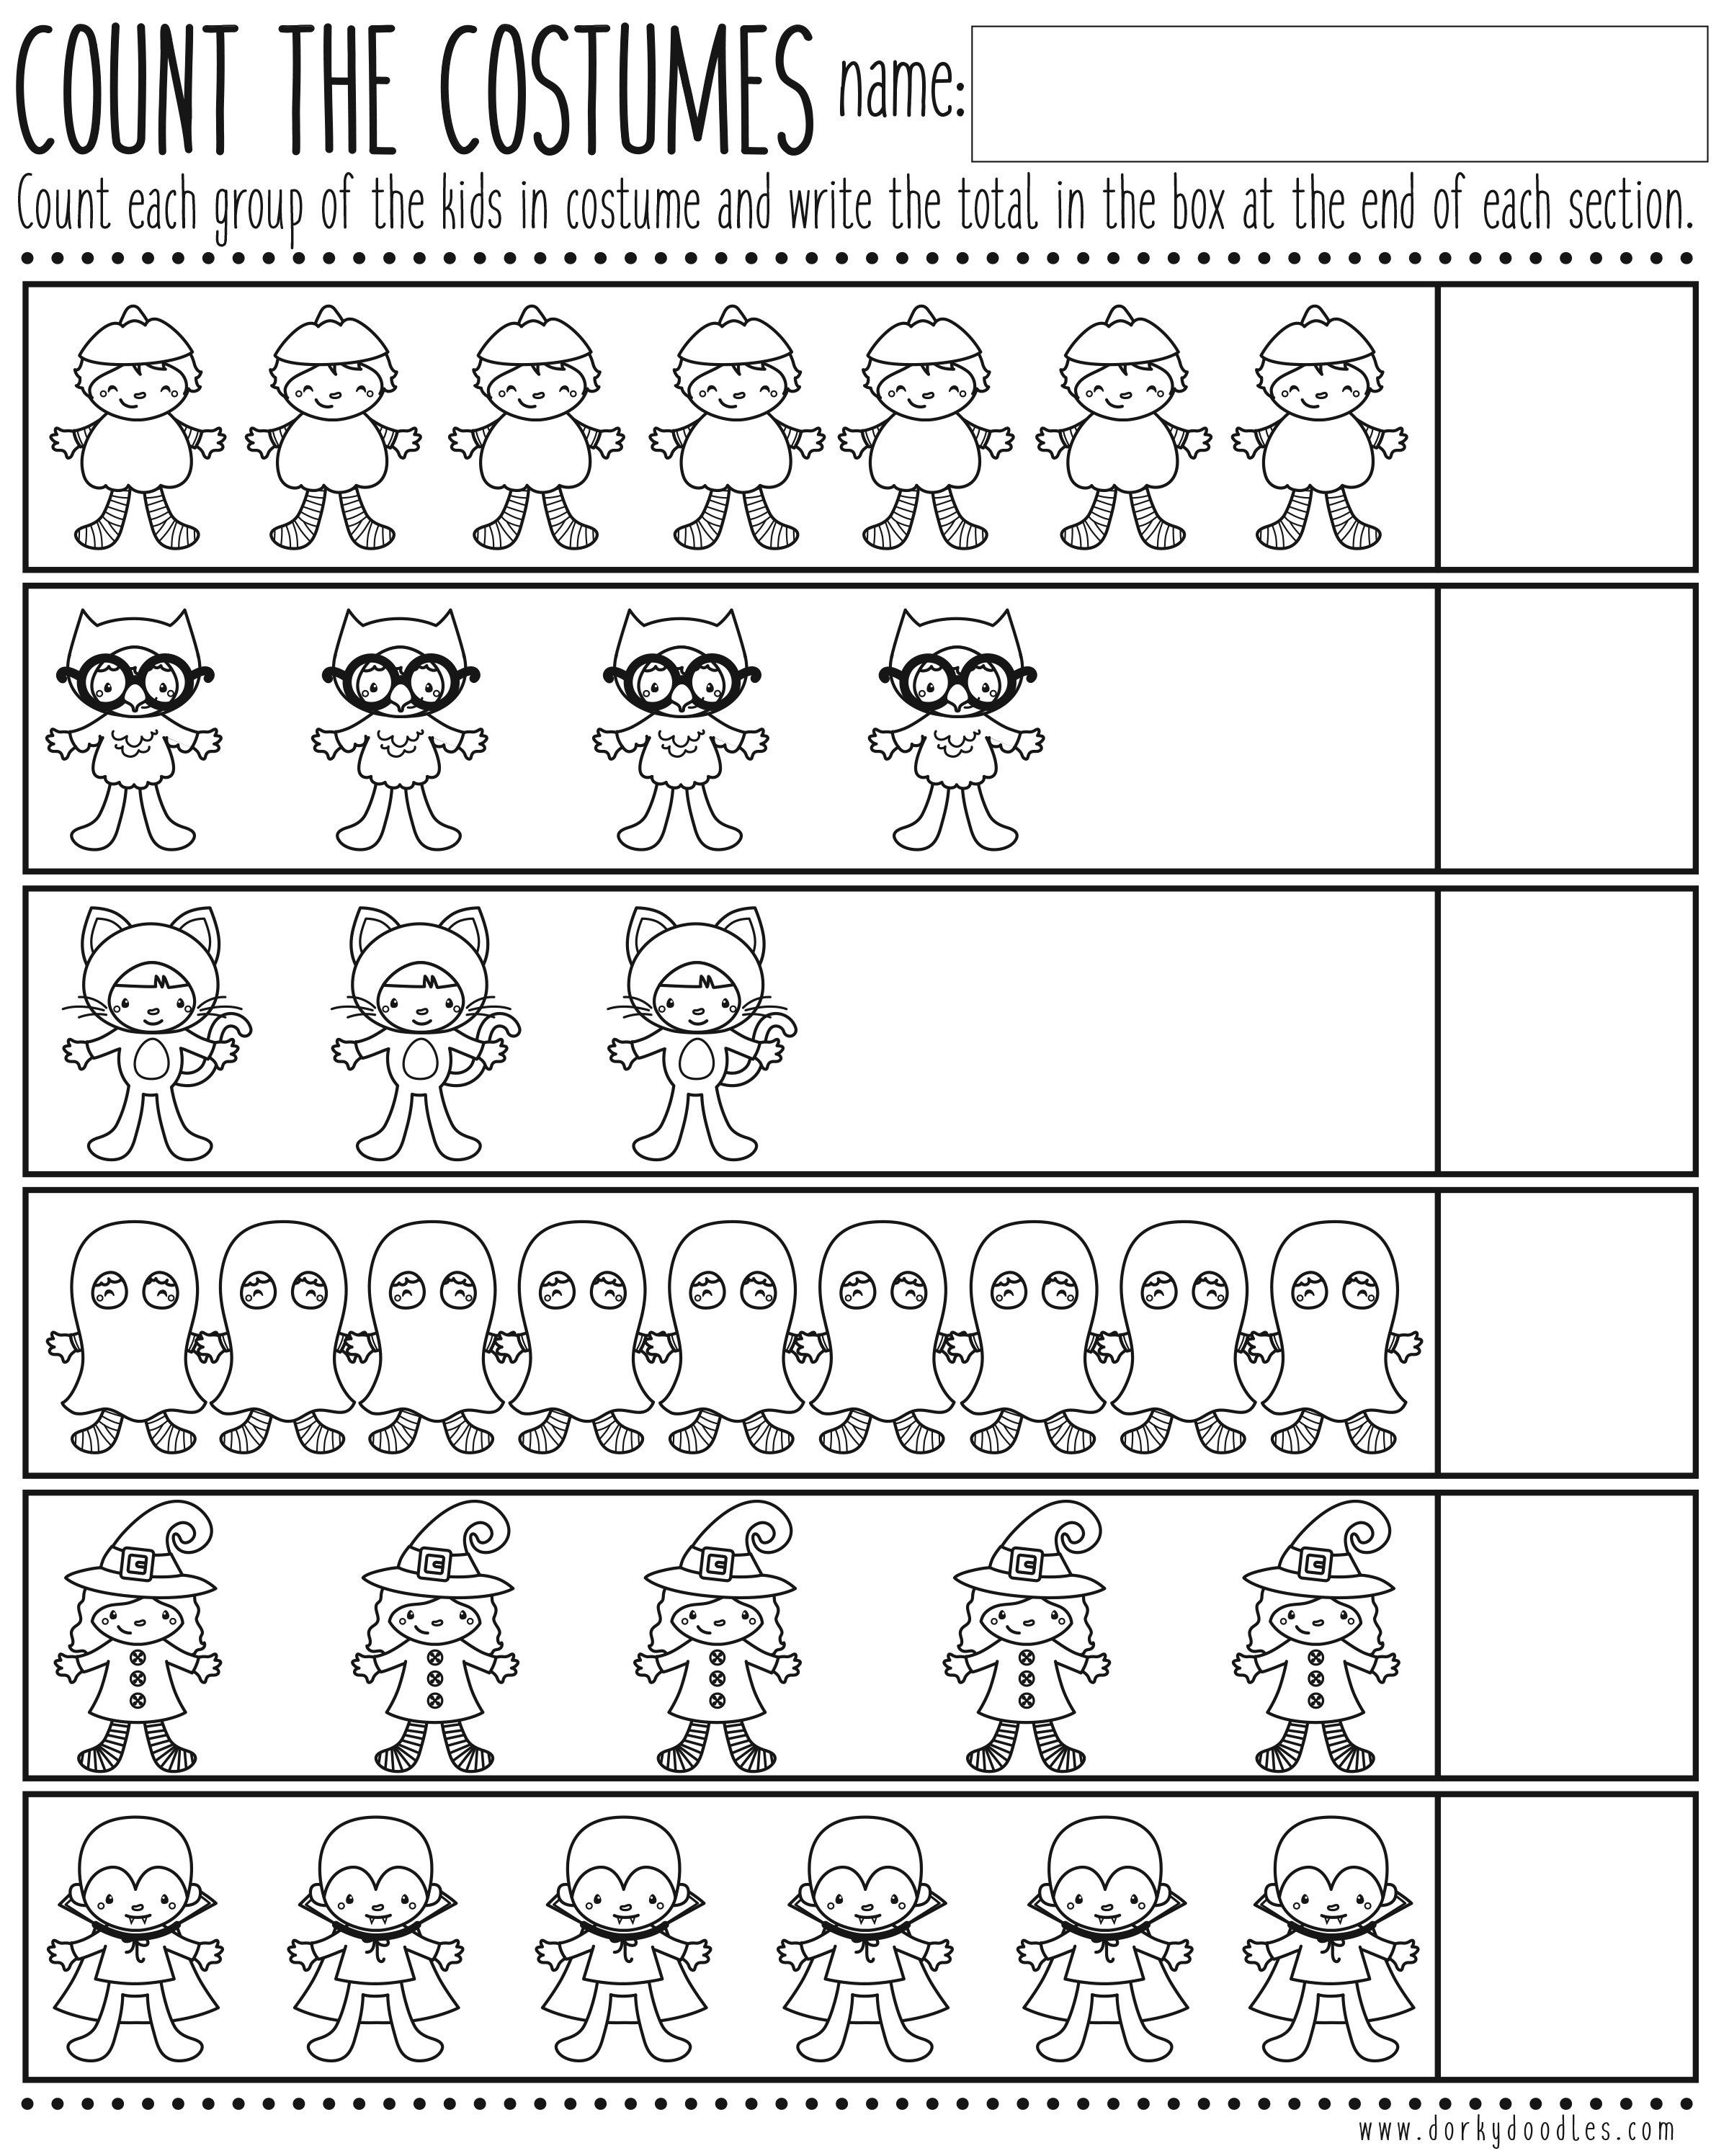 Count the Costumes Printable Worksheet | Worksheets | Pinterest | Kind